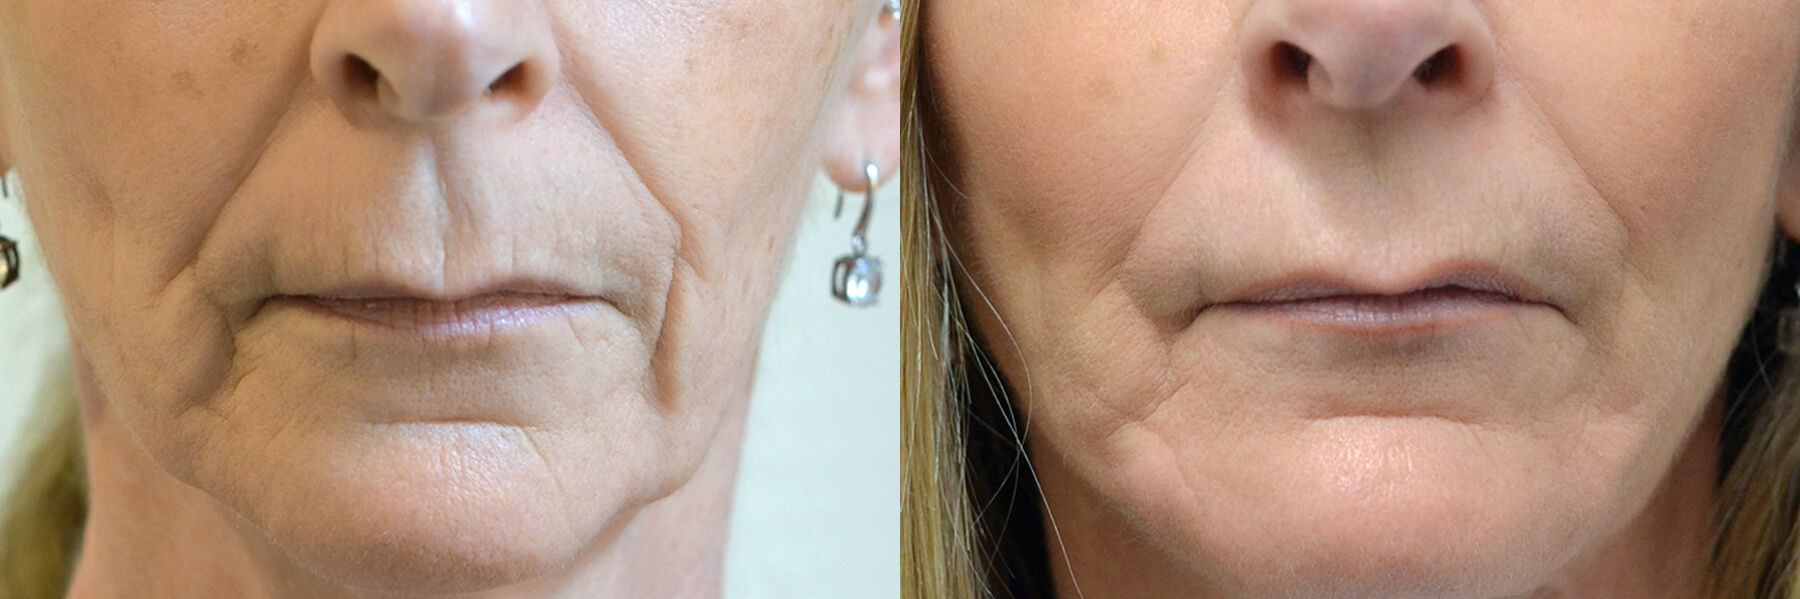 Fat grafting with nano fat stem cell technology before and after